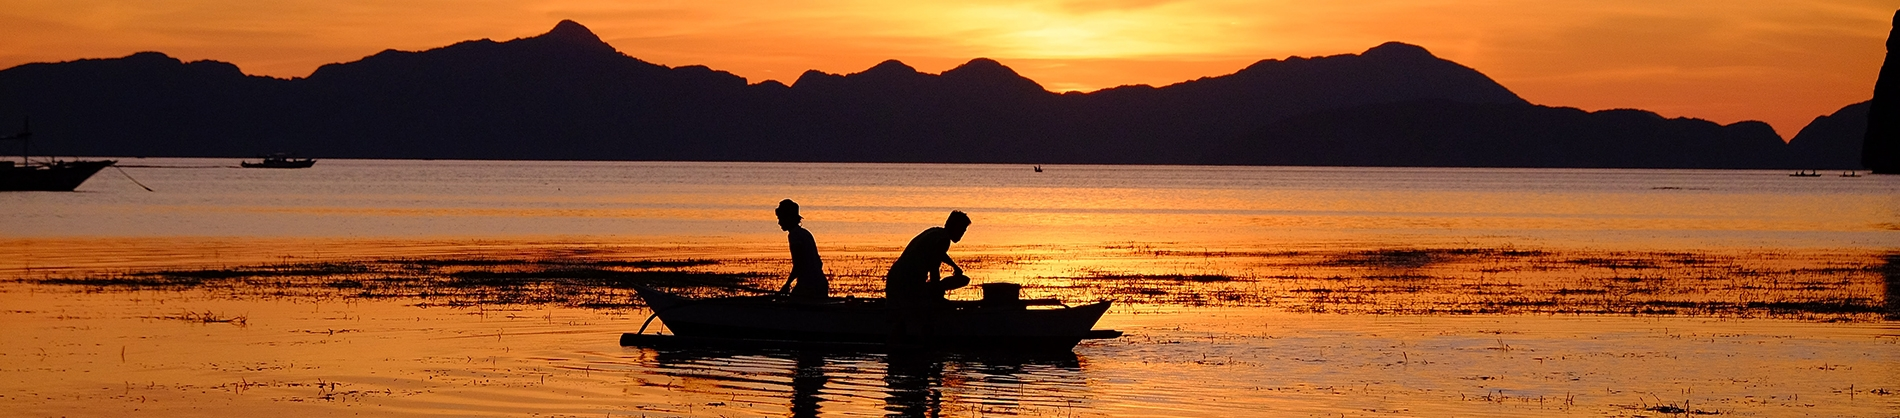 Two fishermen out on a boat at sunrise